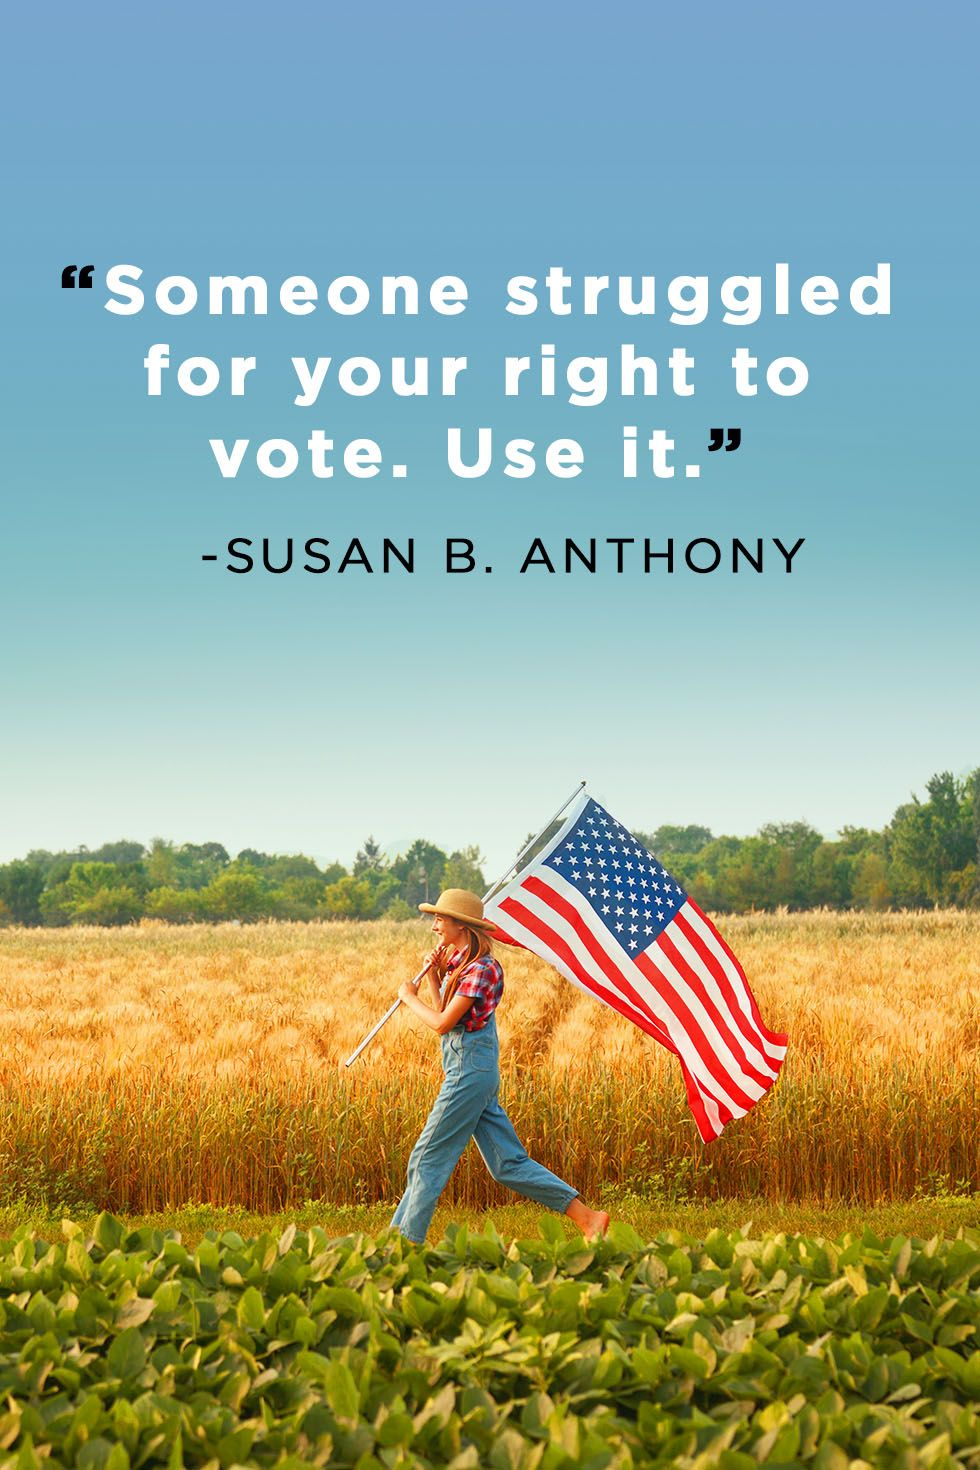 30 Inspiring Voting Quotes - Best Quotes About Elections & Why to Vote